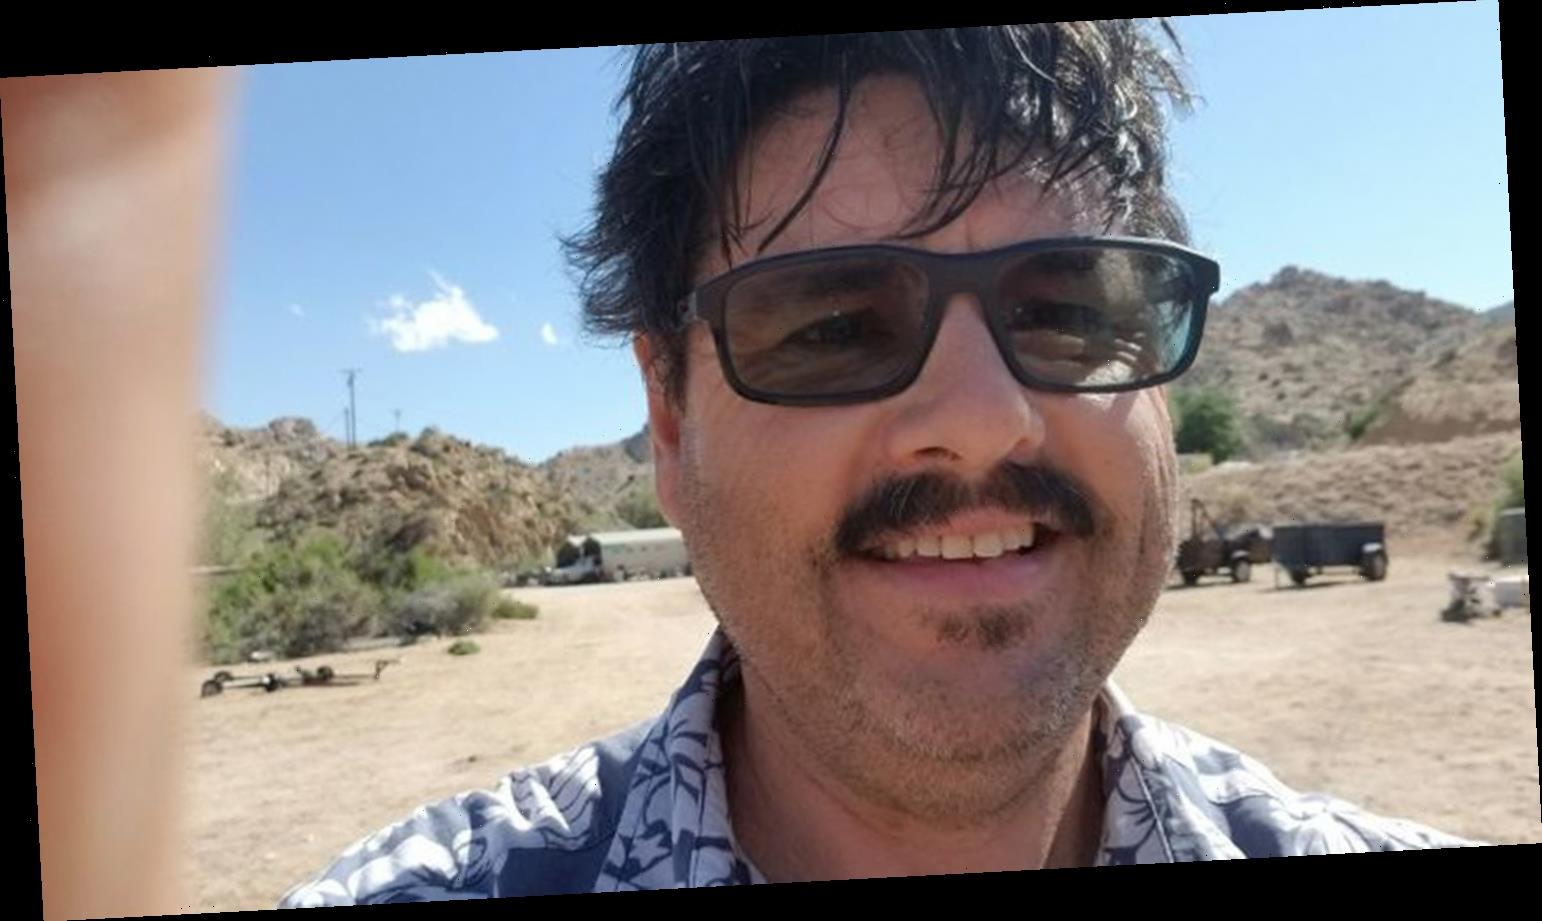 Beloved Special Education Teacher Killed in Attempted Carjacking in California: 'He Was a Superhero'